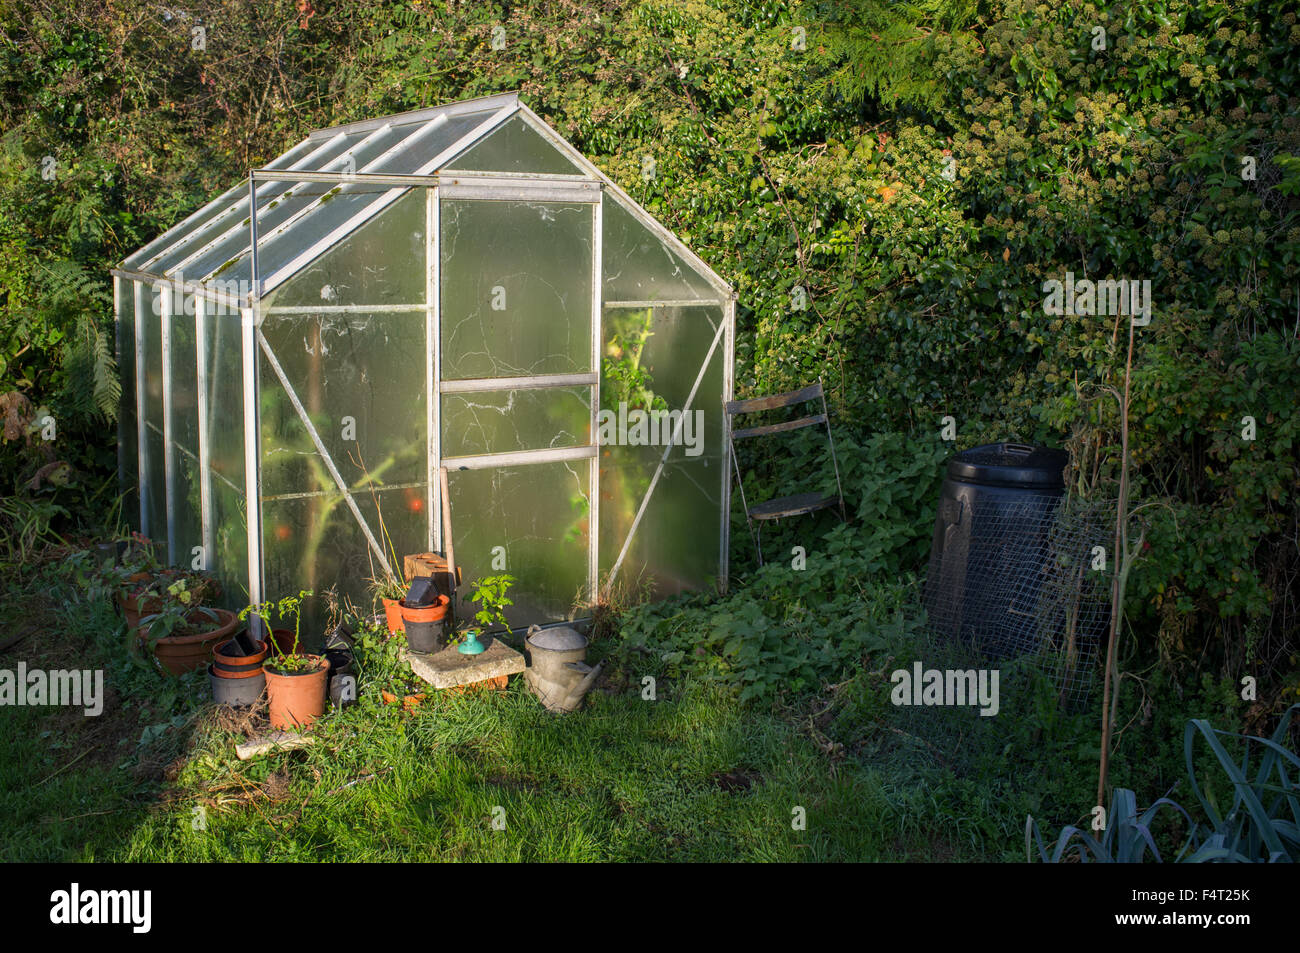 A greenhouse with it's glass covered in condensation - Stock Image